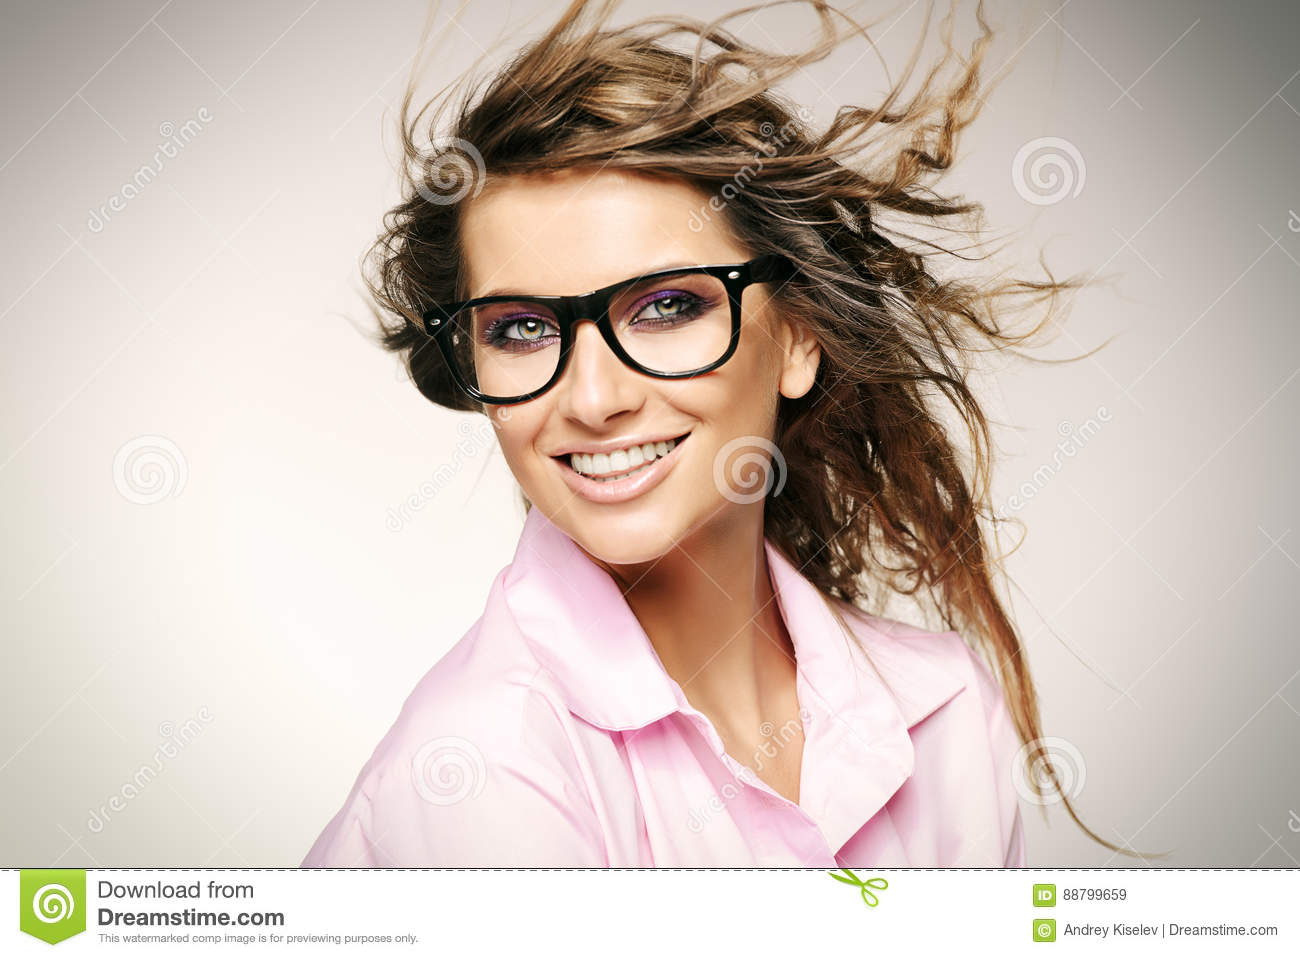 cd4b4f28c98 Close-up portrait of a gorgeous young woman wearing glasses. Beauty